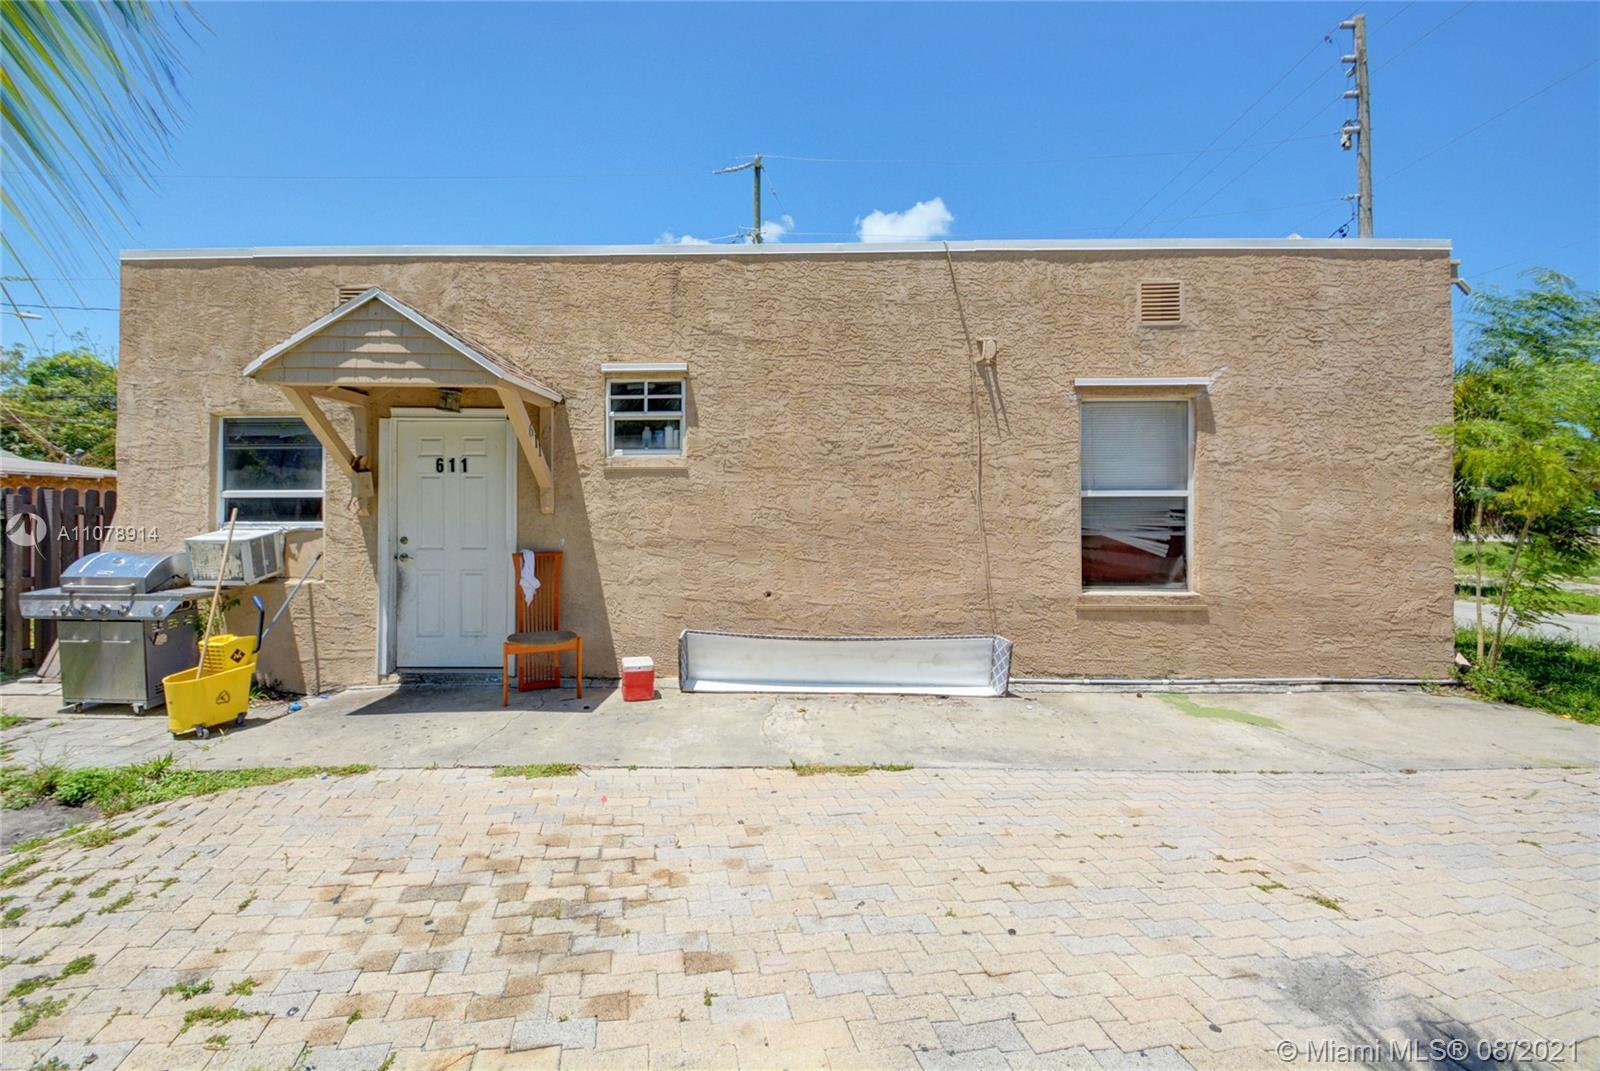 Wonderful Single family for sale, 5 bedrooms 2 bathrooms. The kitchen was replaced a few years ago a